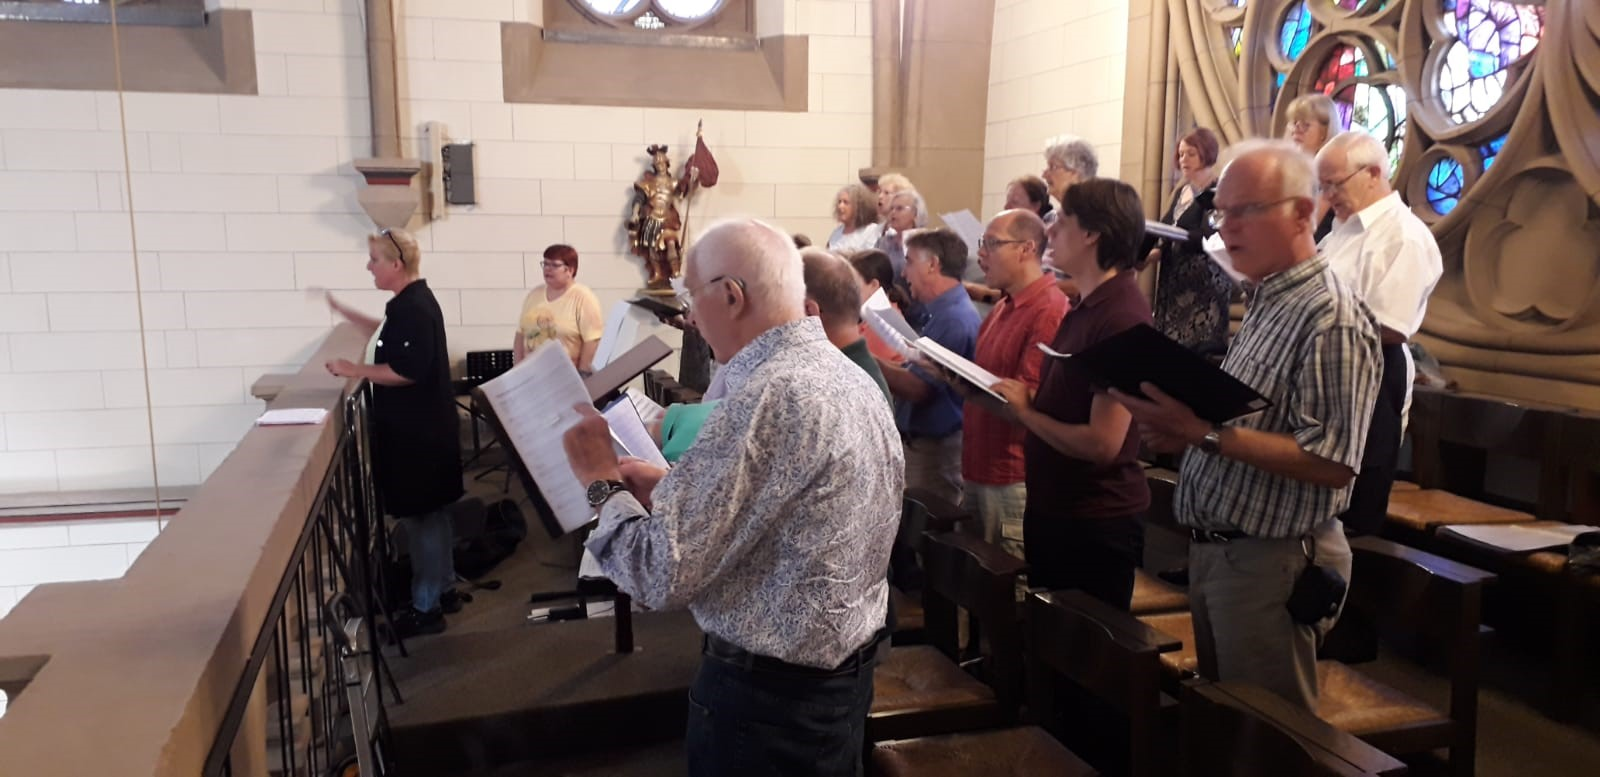 Chorausflug: Singen in St. Marien, Bad Homburg